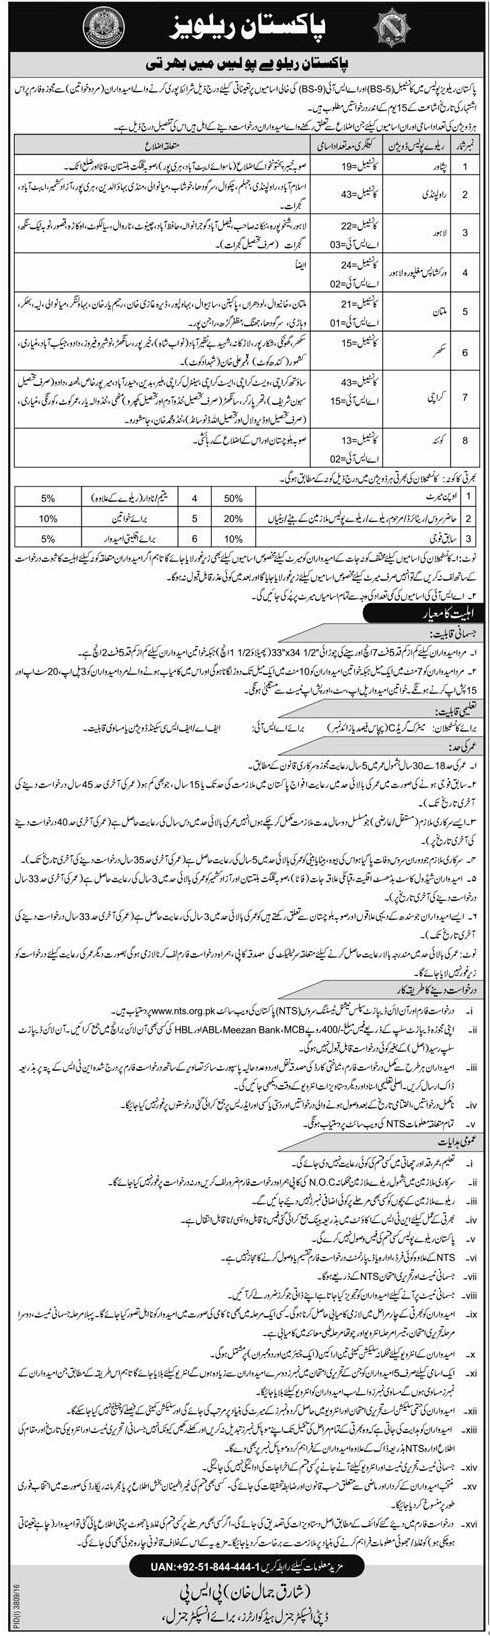 Job Title Pakistan Railway Police Jobs 2017 For Constable and ASI Job Description You can find here latest Pakistan Railway Police Jobs 2017 For Constable and ASI. Applications are invited for Pakistan Railway Police from educated and experienced candidates. Vacant Posts (i). Constable – BPS-05 [Peshawar – Posts=19] (ii). Constable – BPS-05  [Rawalpindi – Posts=43] (iii). Constable – BPS-05 …